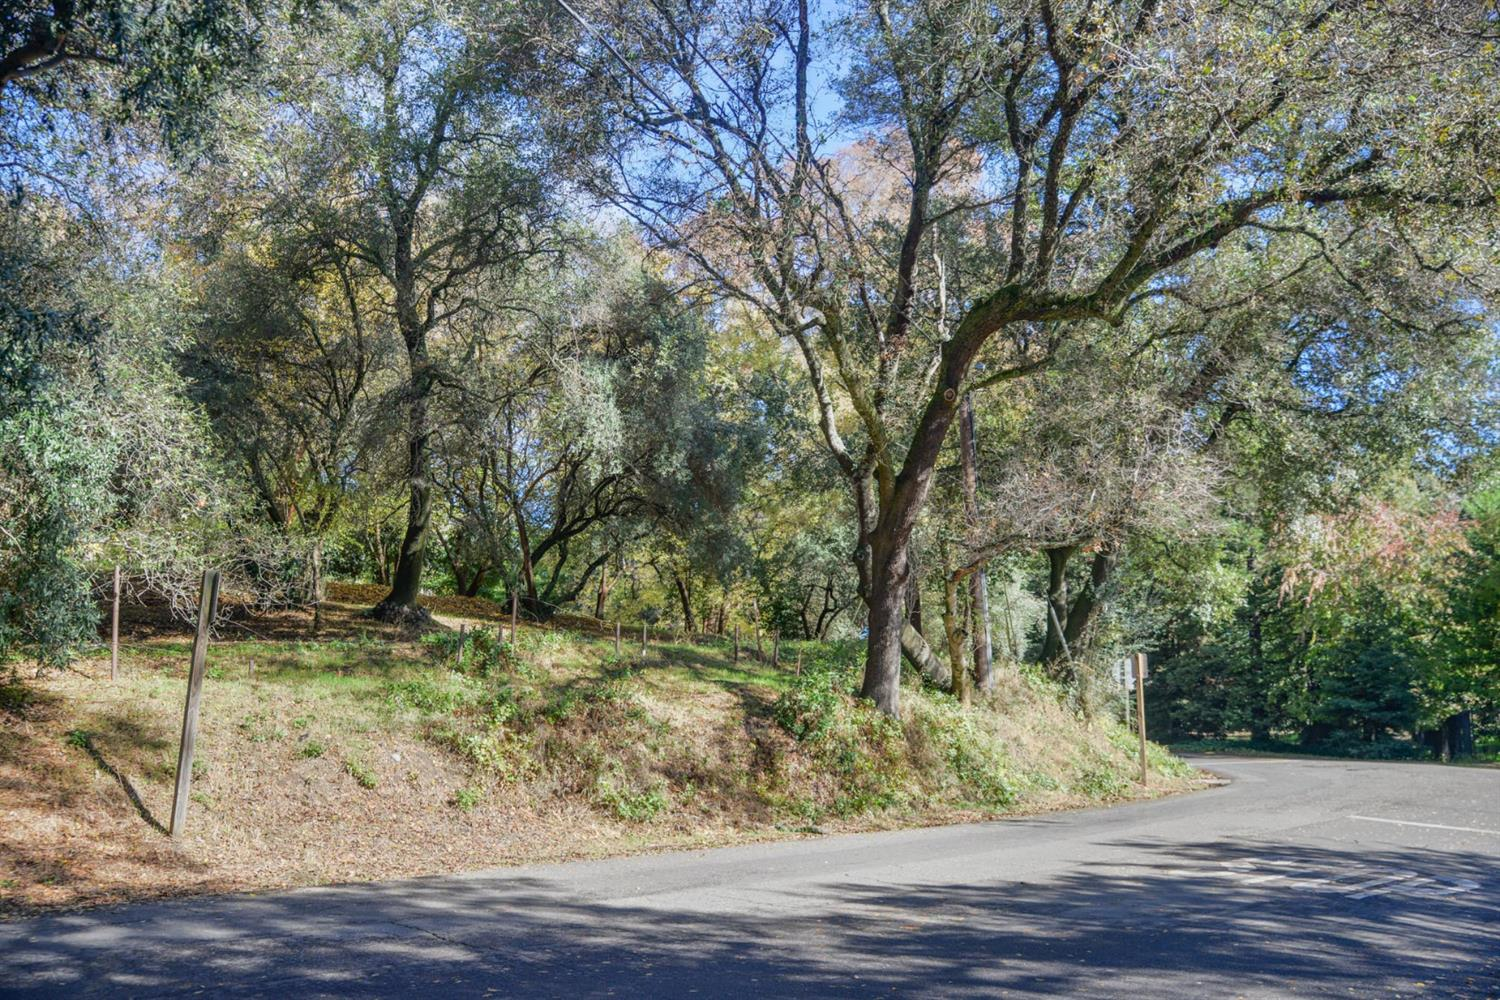 Outstanding lot ready for you to build the home of your dreams! This lot is perched above the corner of Pennsylvania and Magnolia, right at the entrance to the American River Parkway trail! There is a potential building pad of approximately 2,480 square feet! Trees and potential views, plus on site water make this lot very desirable! Come enjoy the special features of living in Old Fair Oaks right by the river!